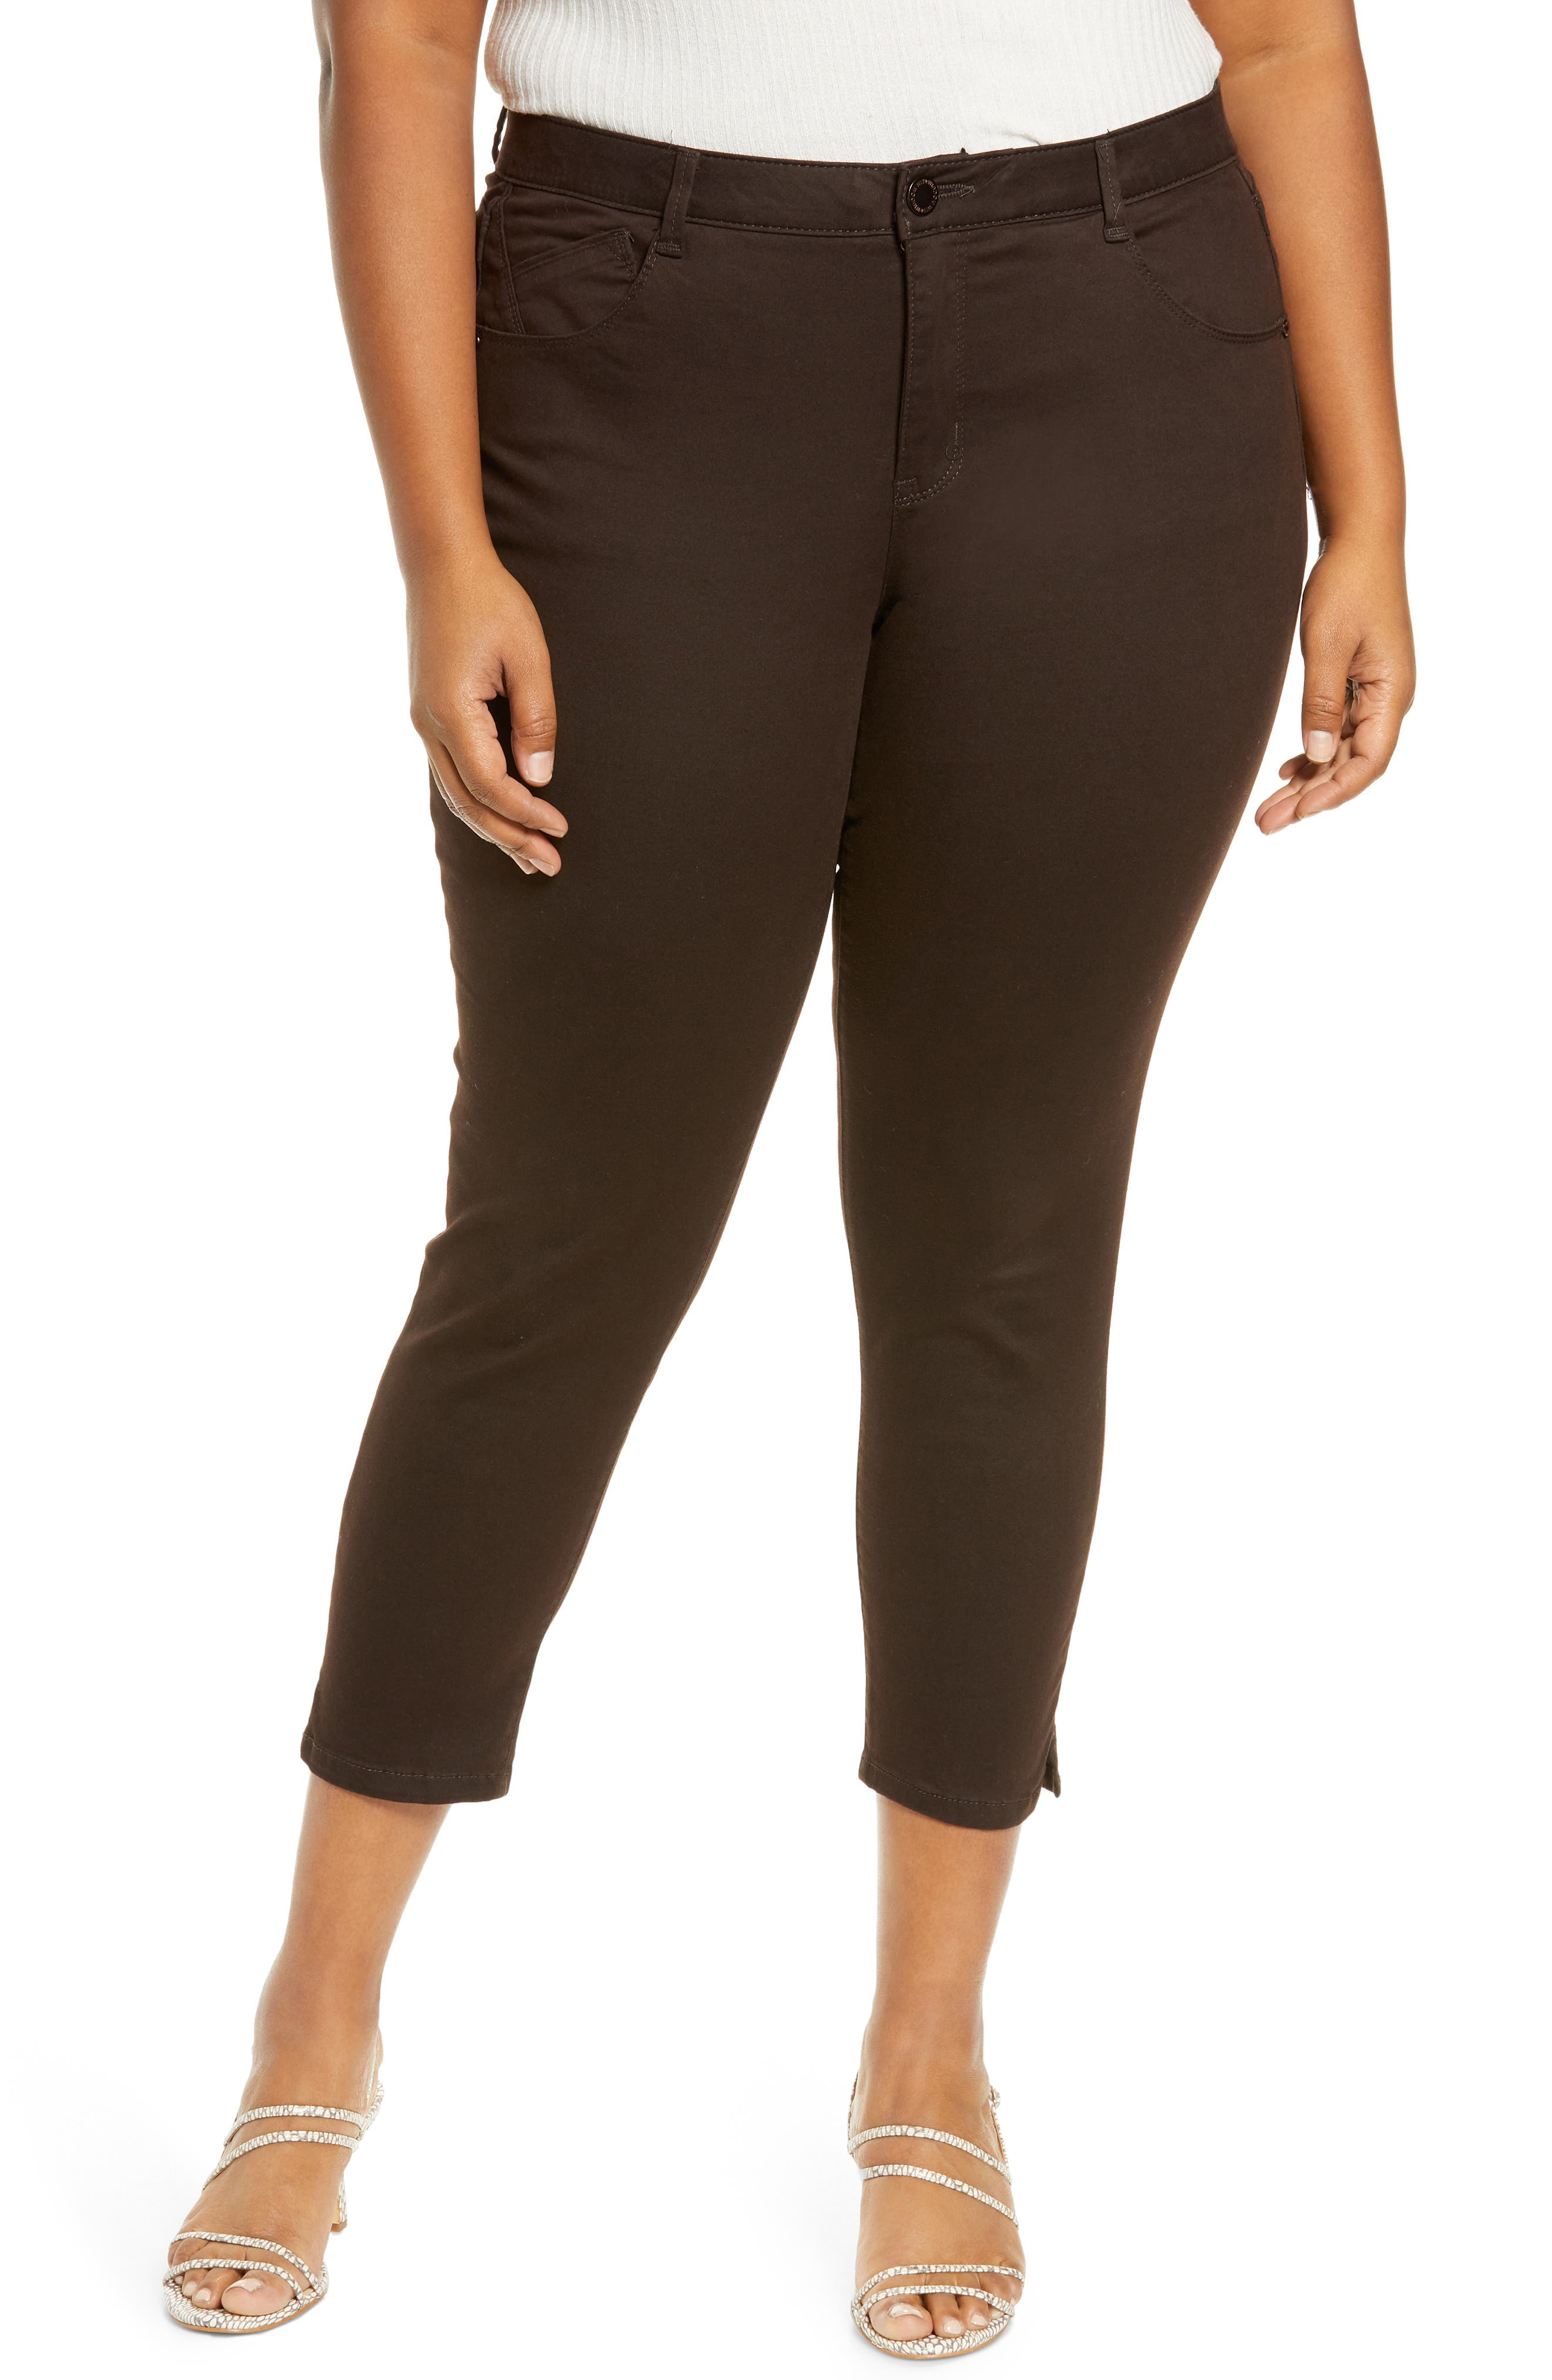 Stretchy, ankle-grazing skinny pants are designed for a slimming fit with Ab-solution technology to shape, smooth and lift in all the right places. Style Name: Wit & Wisdom Ab-Solution High Waist Ankle Skinny Pants (Plus Size) (Nordstrom Exclusive). Style Number: 5785708. Available in stores.